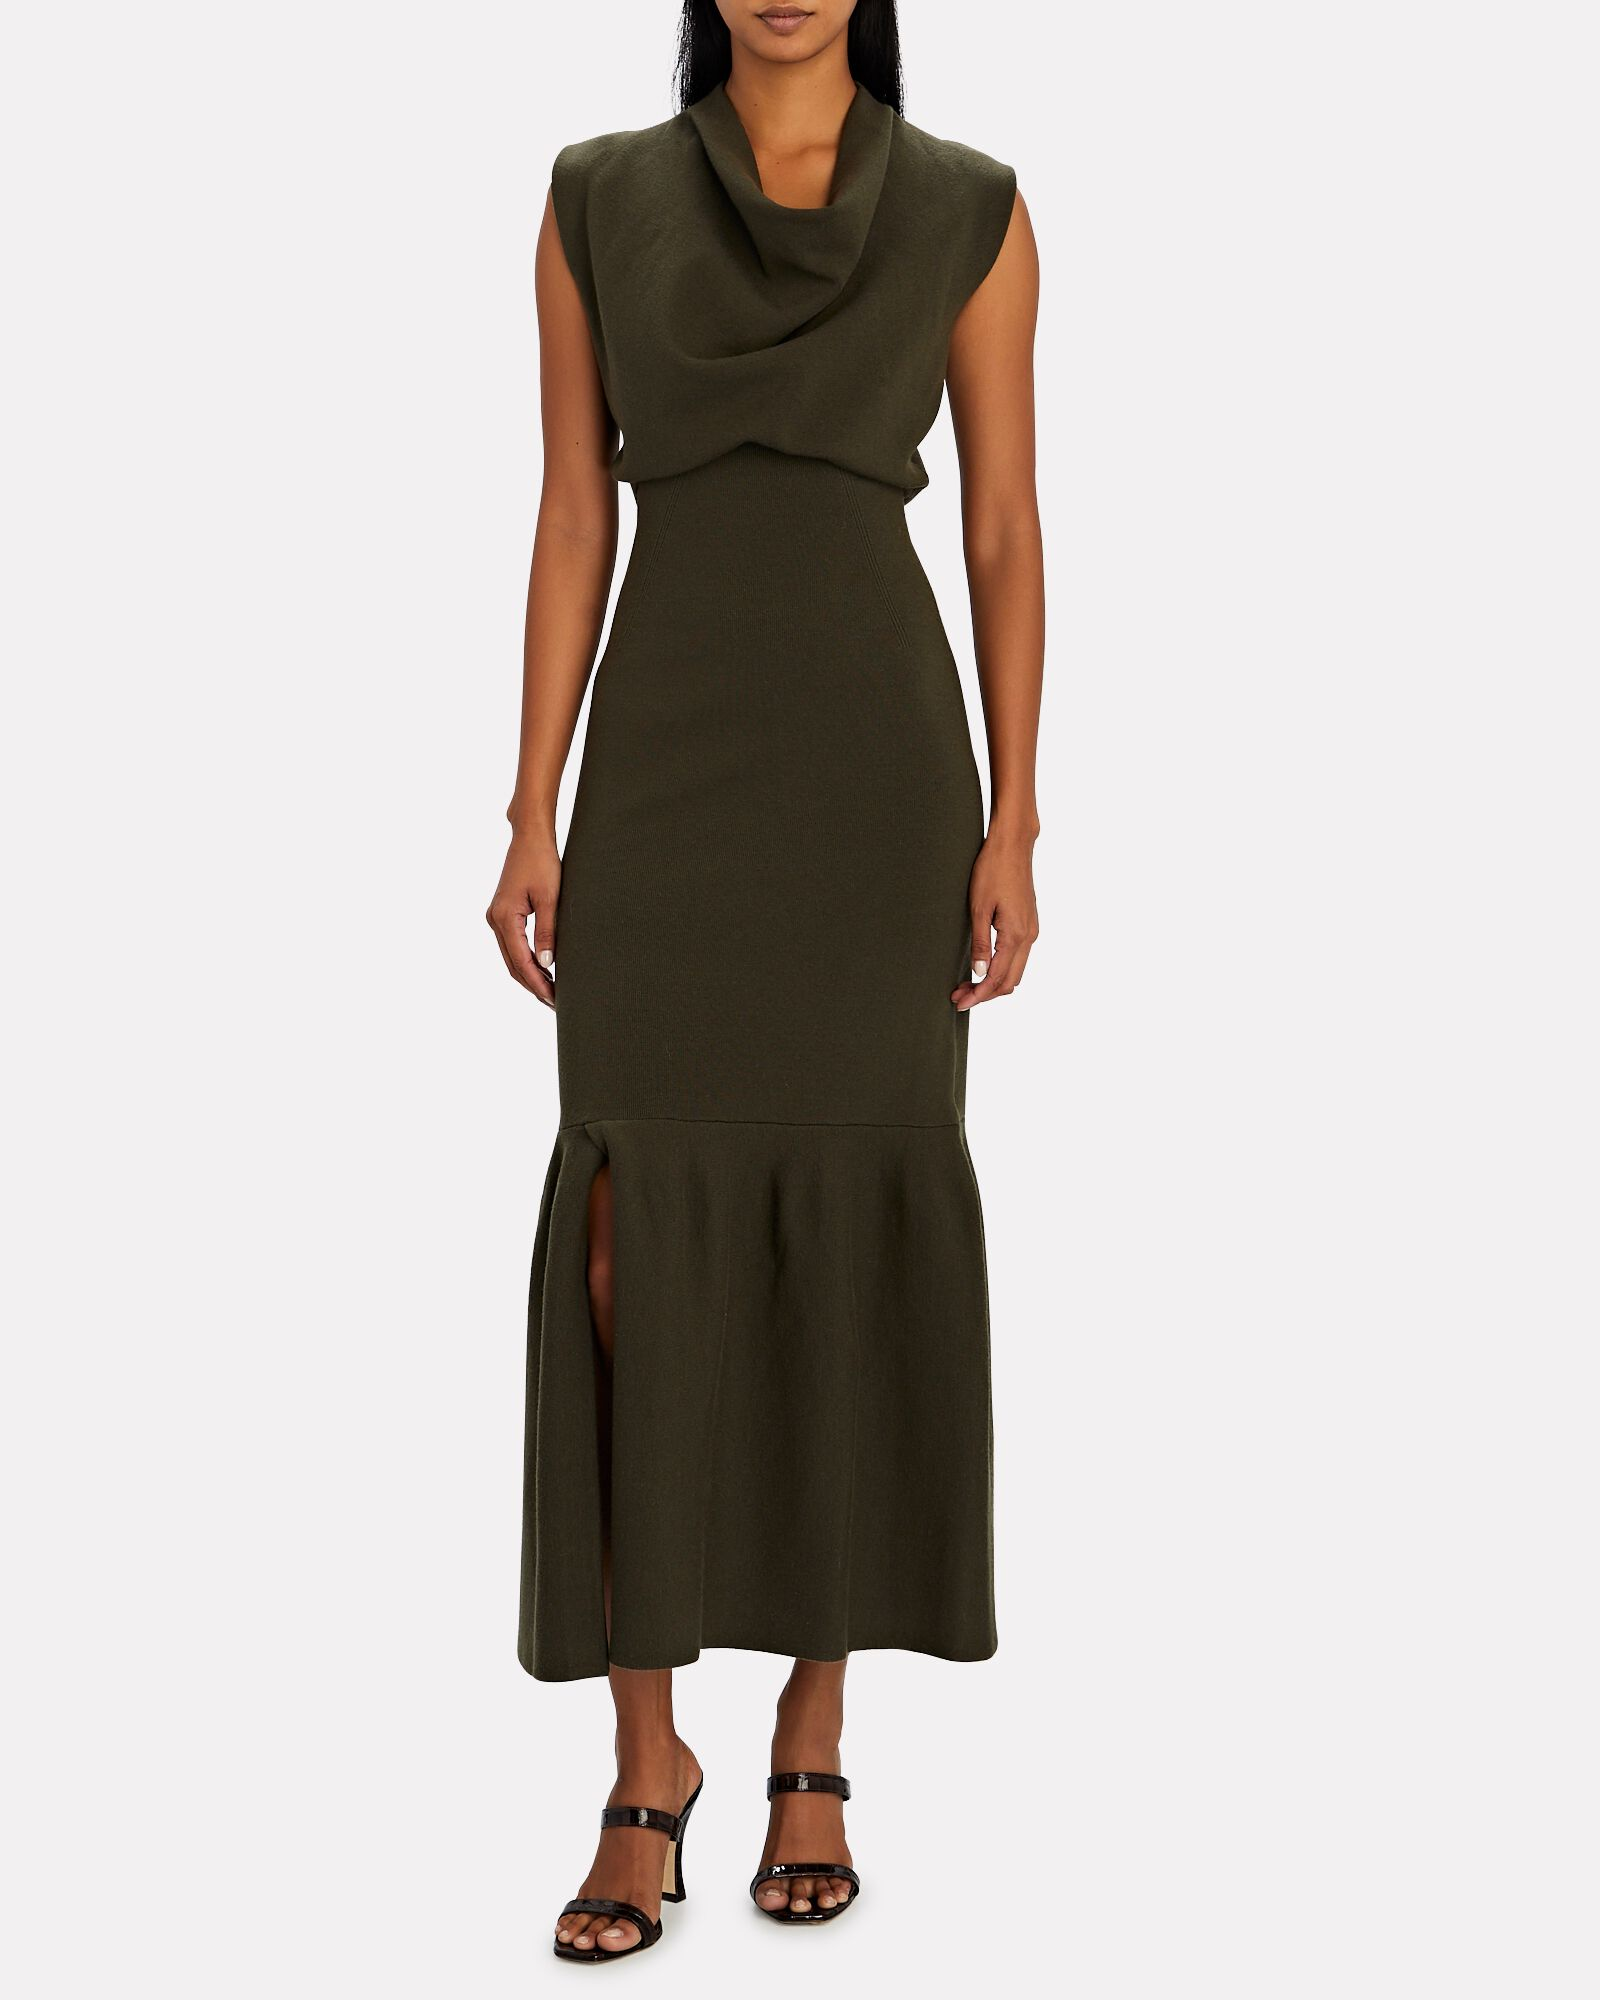 Rib Knit Cowl Neck Maxi Dress, OLIVE/ARMY, hi-res